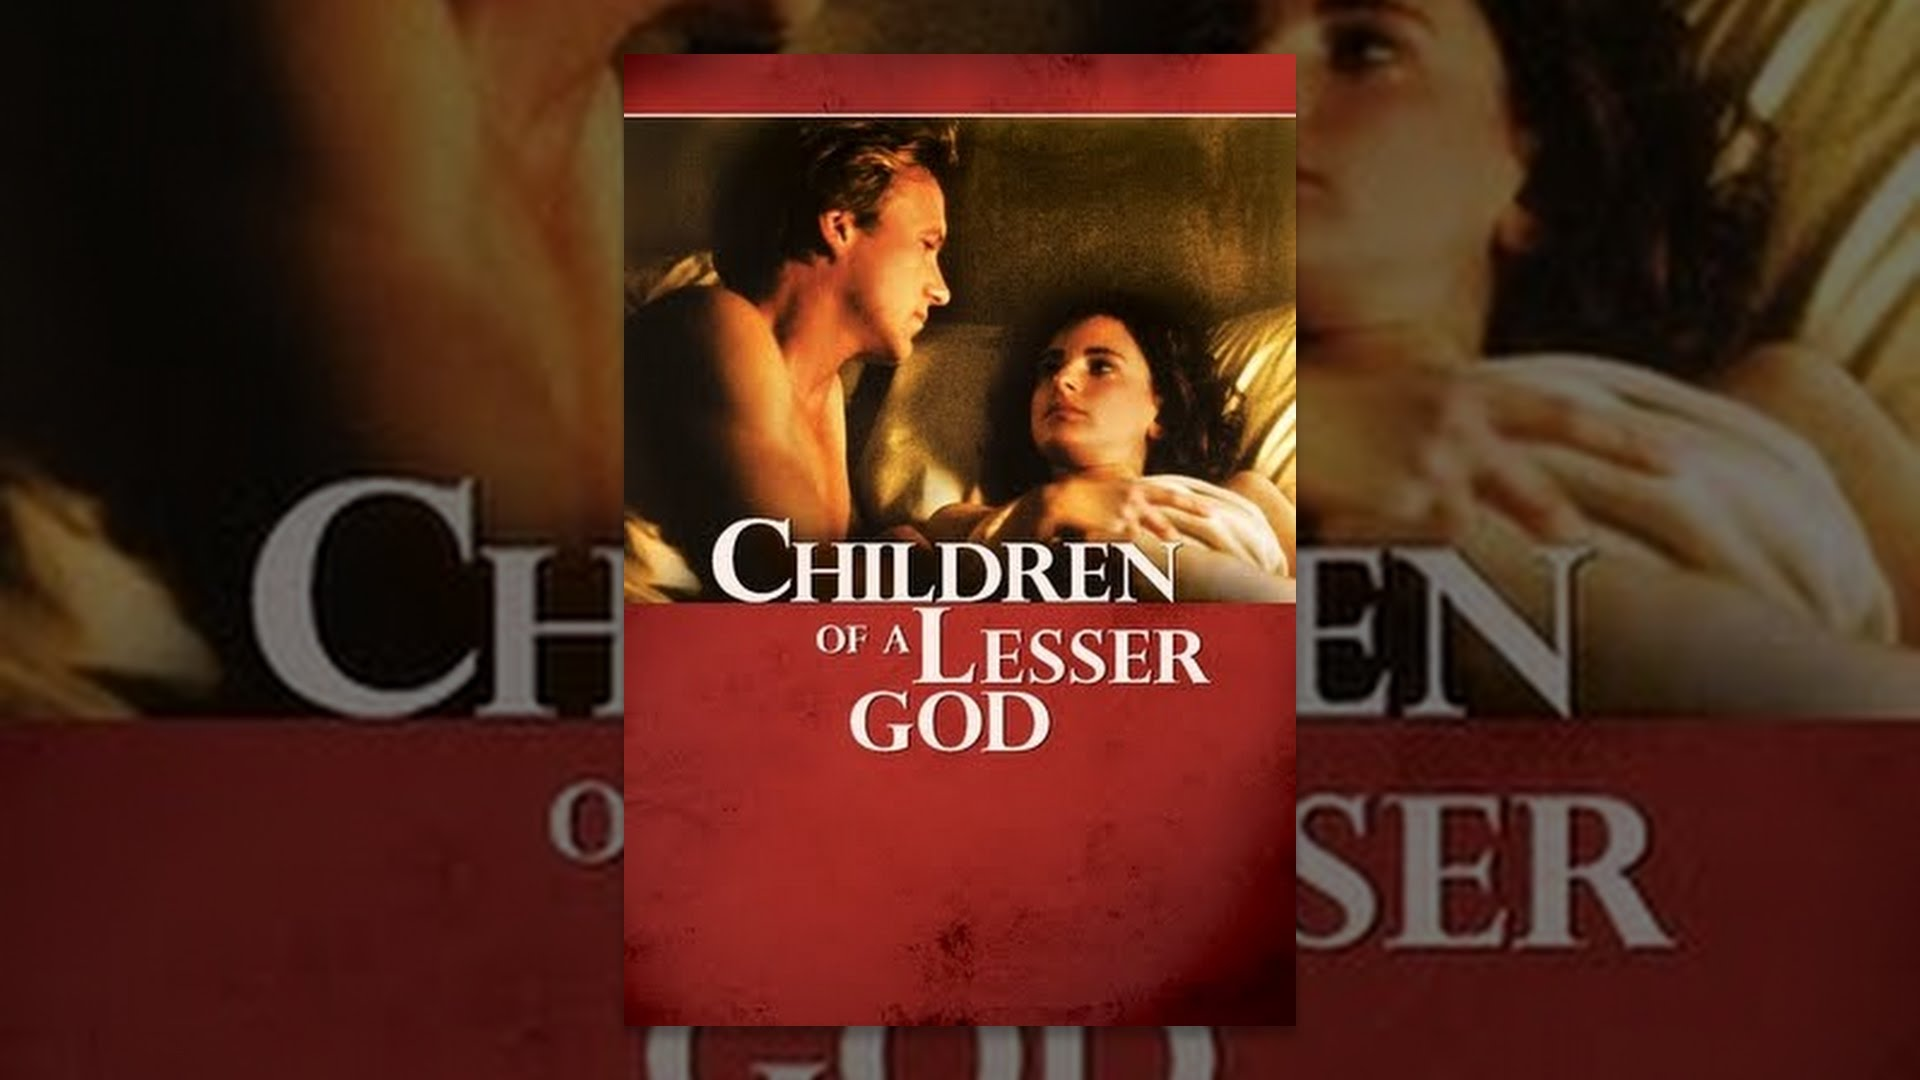 an analysis of the movie children of a lesser god